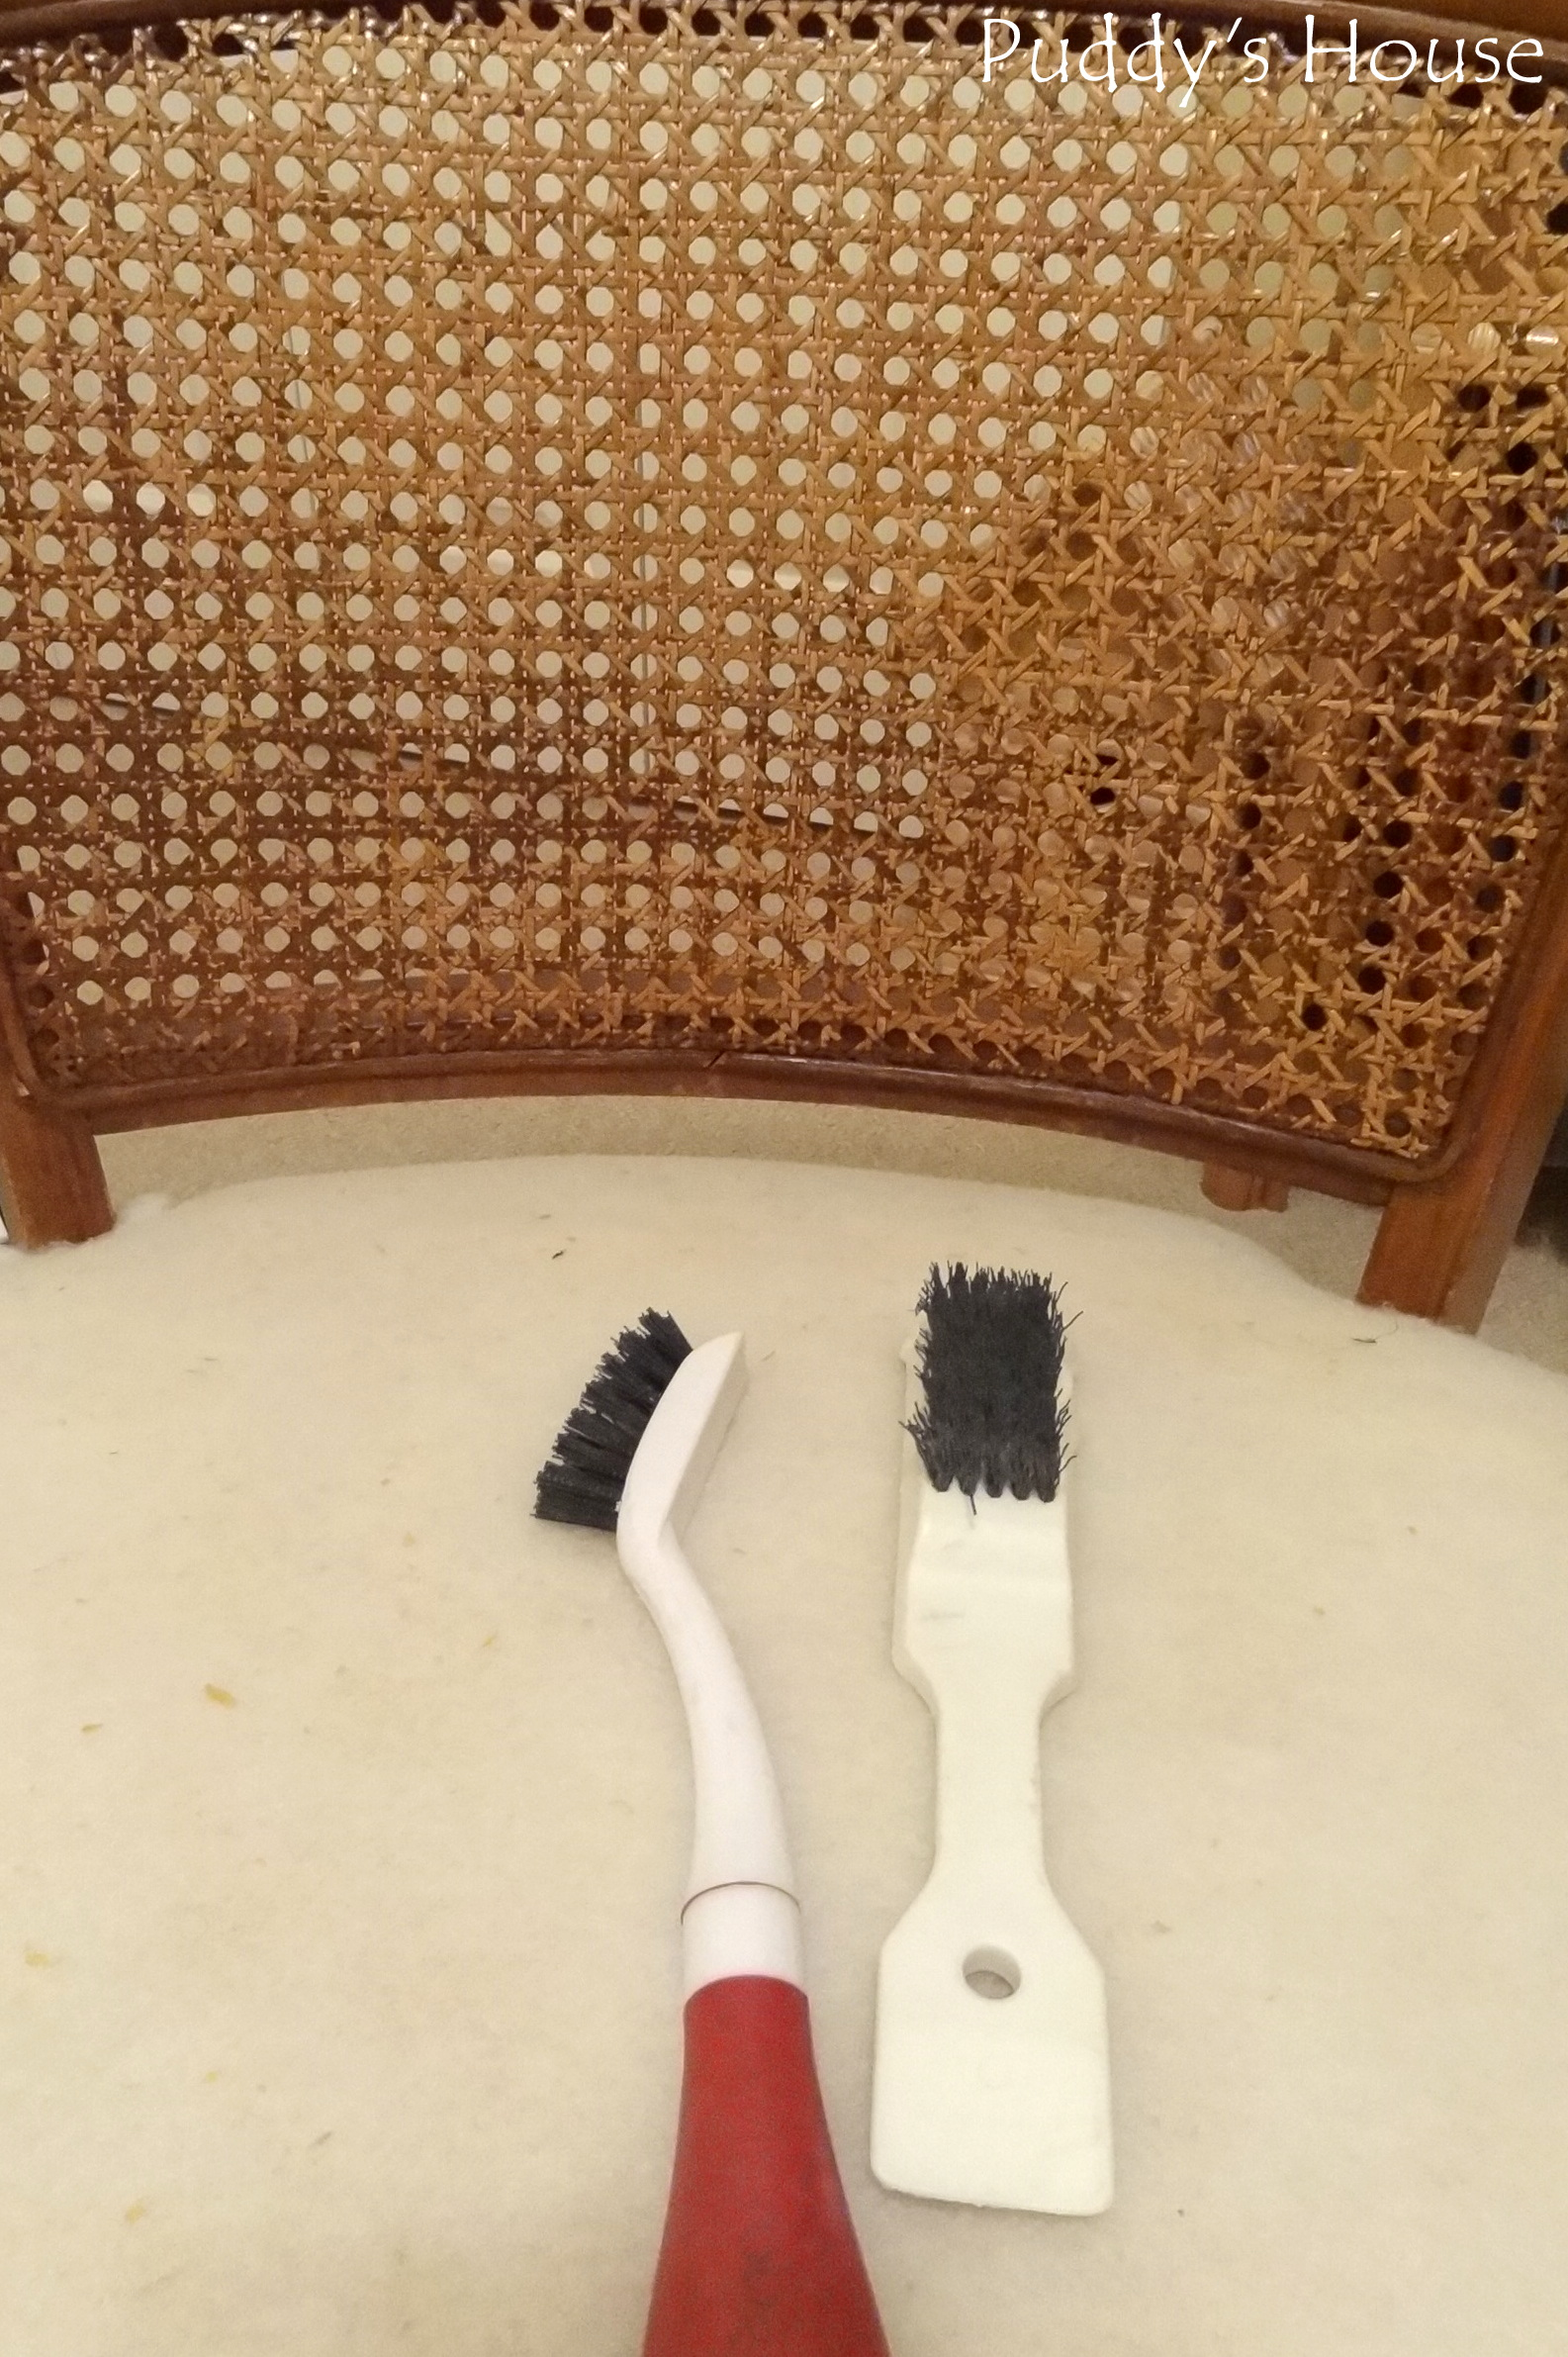 Chair caning supplies - Ugly To Pretty Chair Caning With Wire Brush